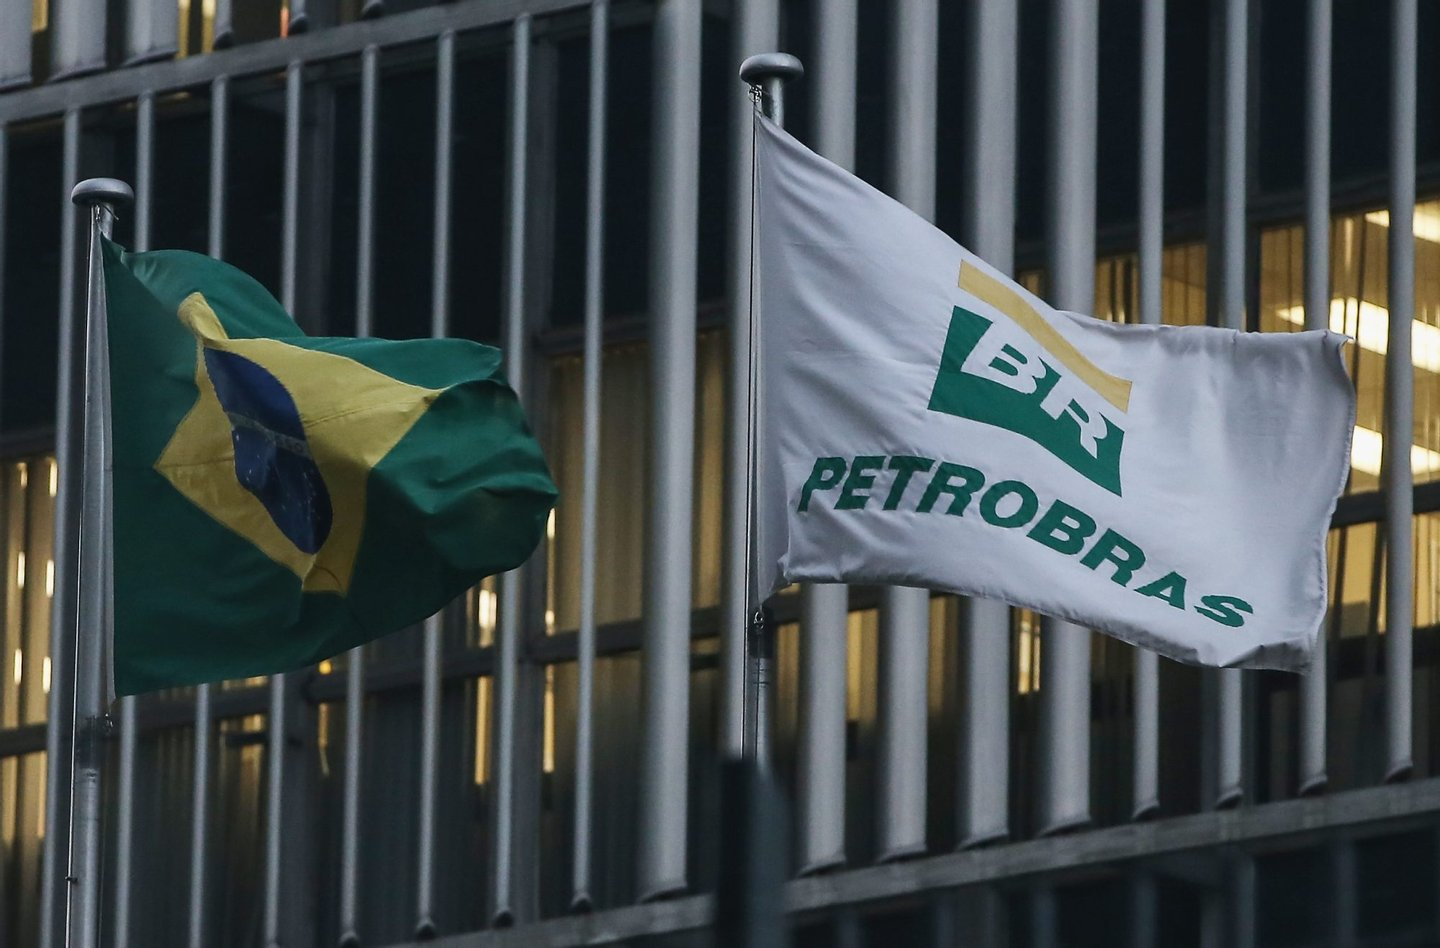 RIO DE JANEIRO, BRAZIL - APRIL 13: A Brazilian flag and a Petrobras flag fly in front of Petrobras headquarters on April 13, 2016 in Rio de Janeiro, Brazil. A massive corruption scandal at the state-owned oil company has sparked a political crisis in Brazil. President Dilma Rousseff, who has not been linked to the corruption scandal, was chairwoman of the Petrobras board from 2003-2010. President Rousseff is now facing impeachment with an initial vote set in the lower house of Congress for Sunday. (Photo by Mario Tama/Getty Images)